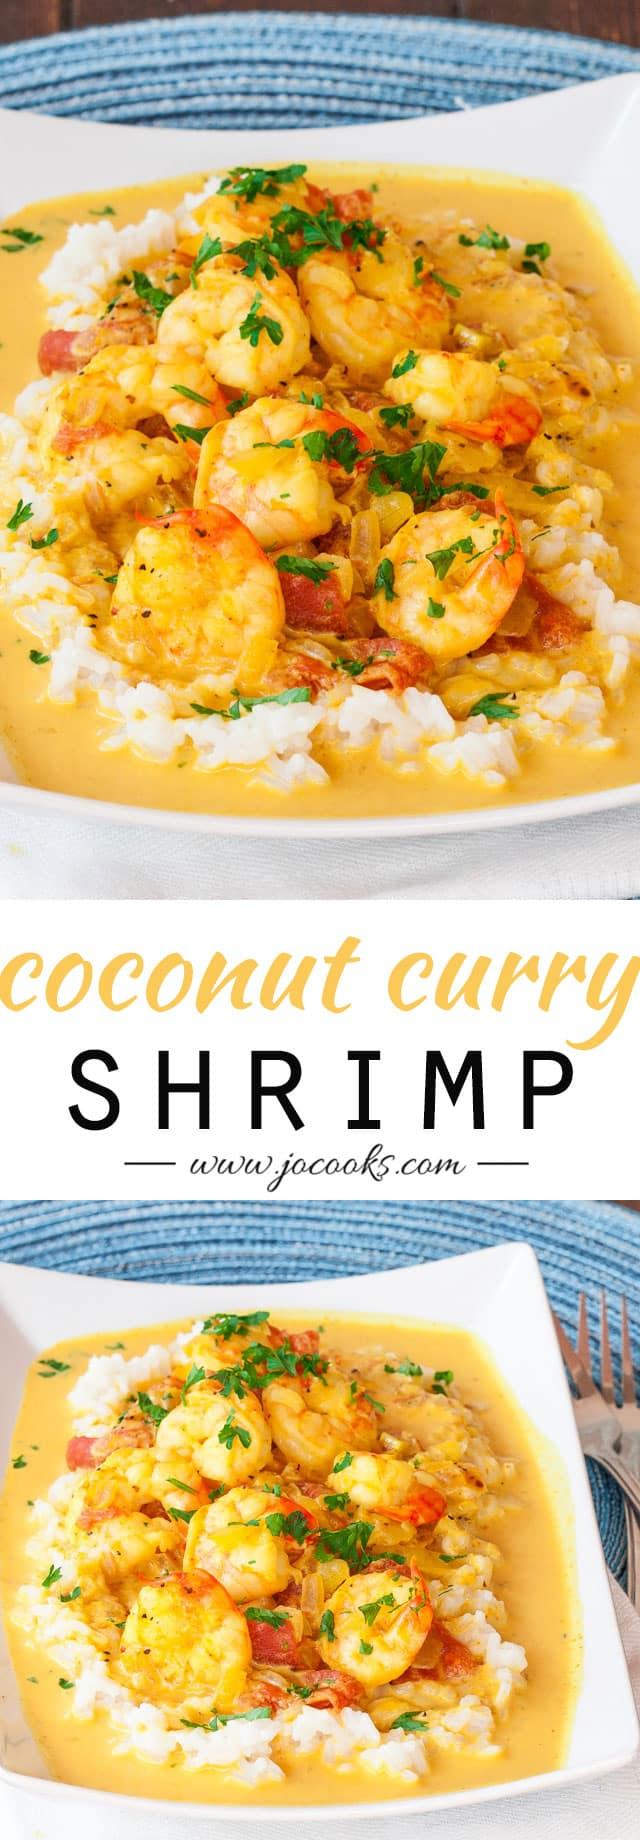 coconut-shrimp-curry-shrimp